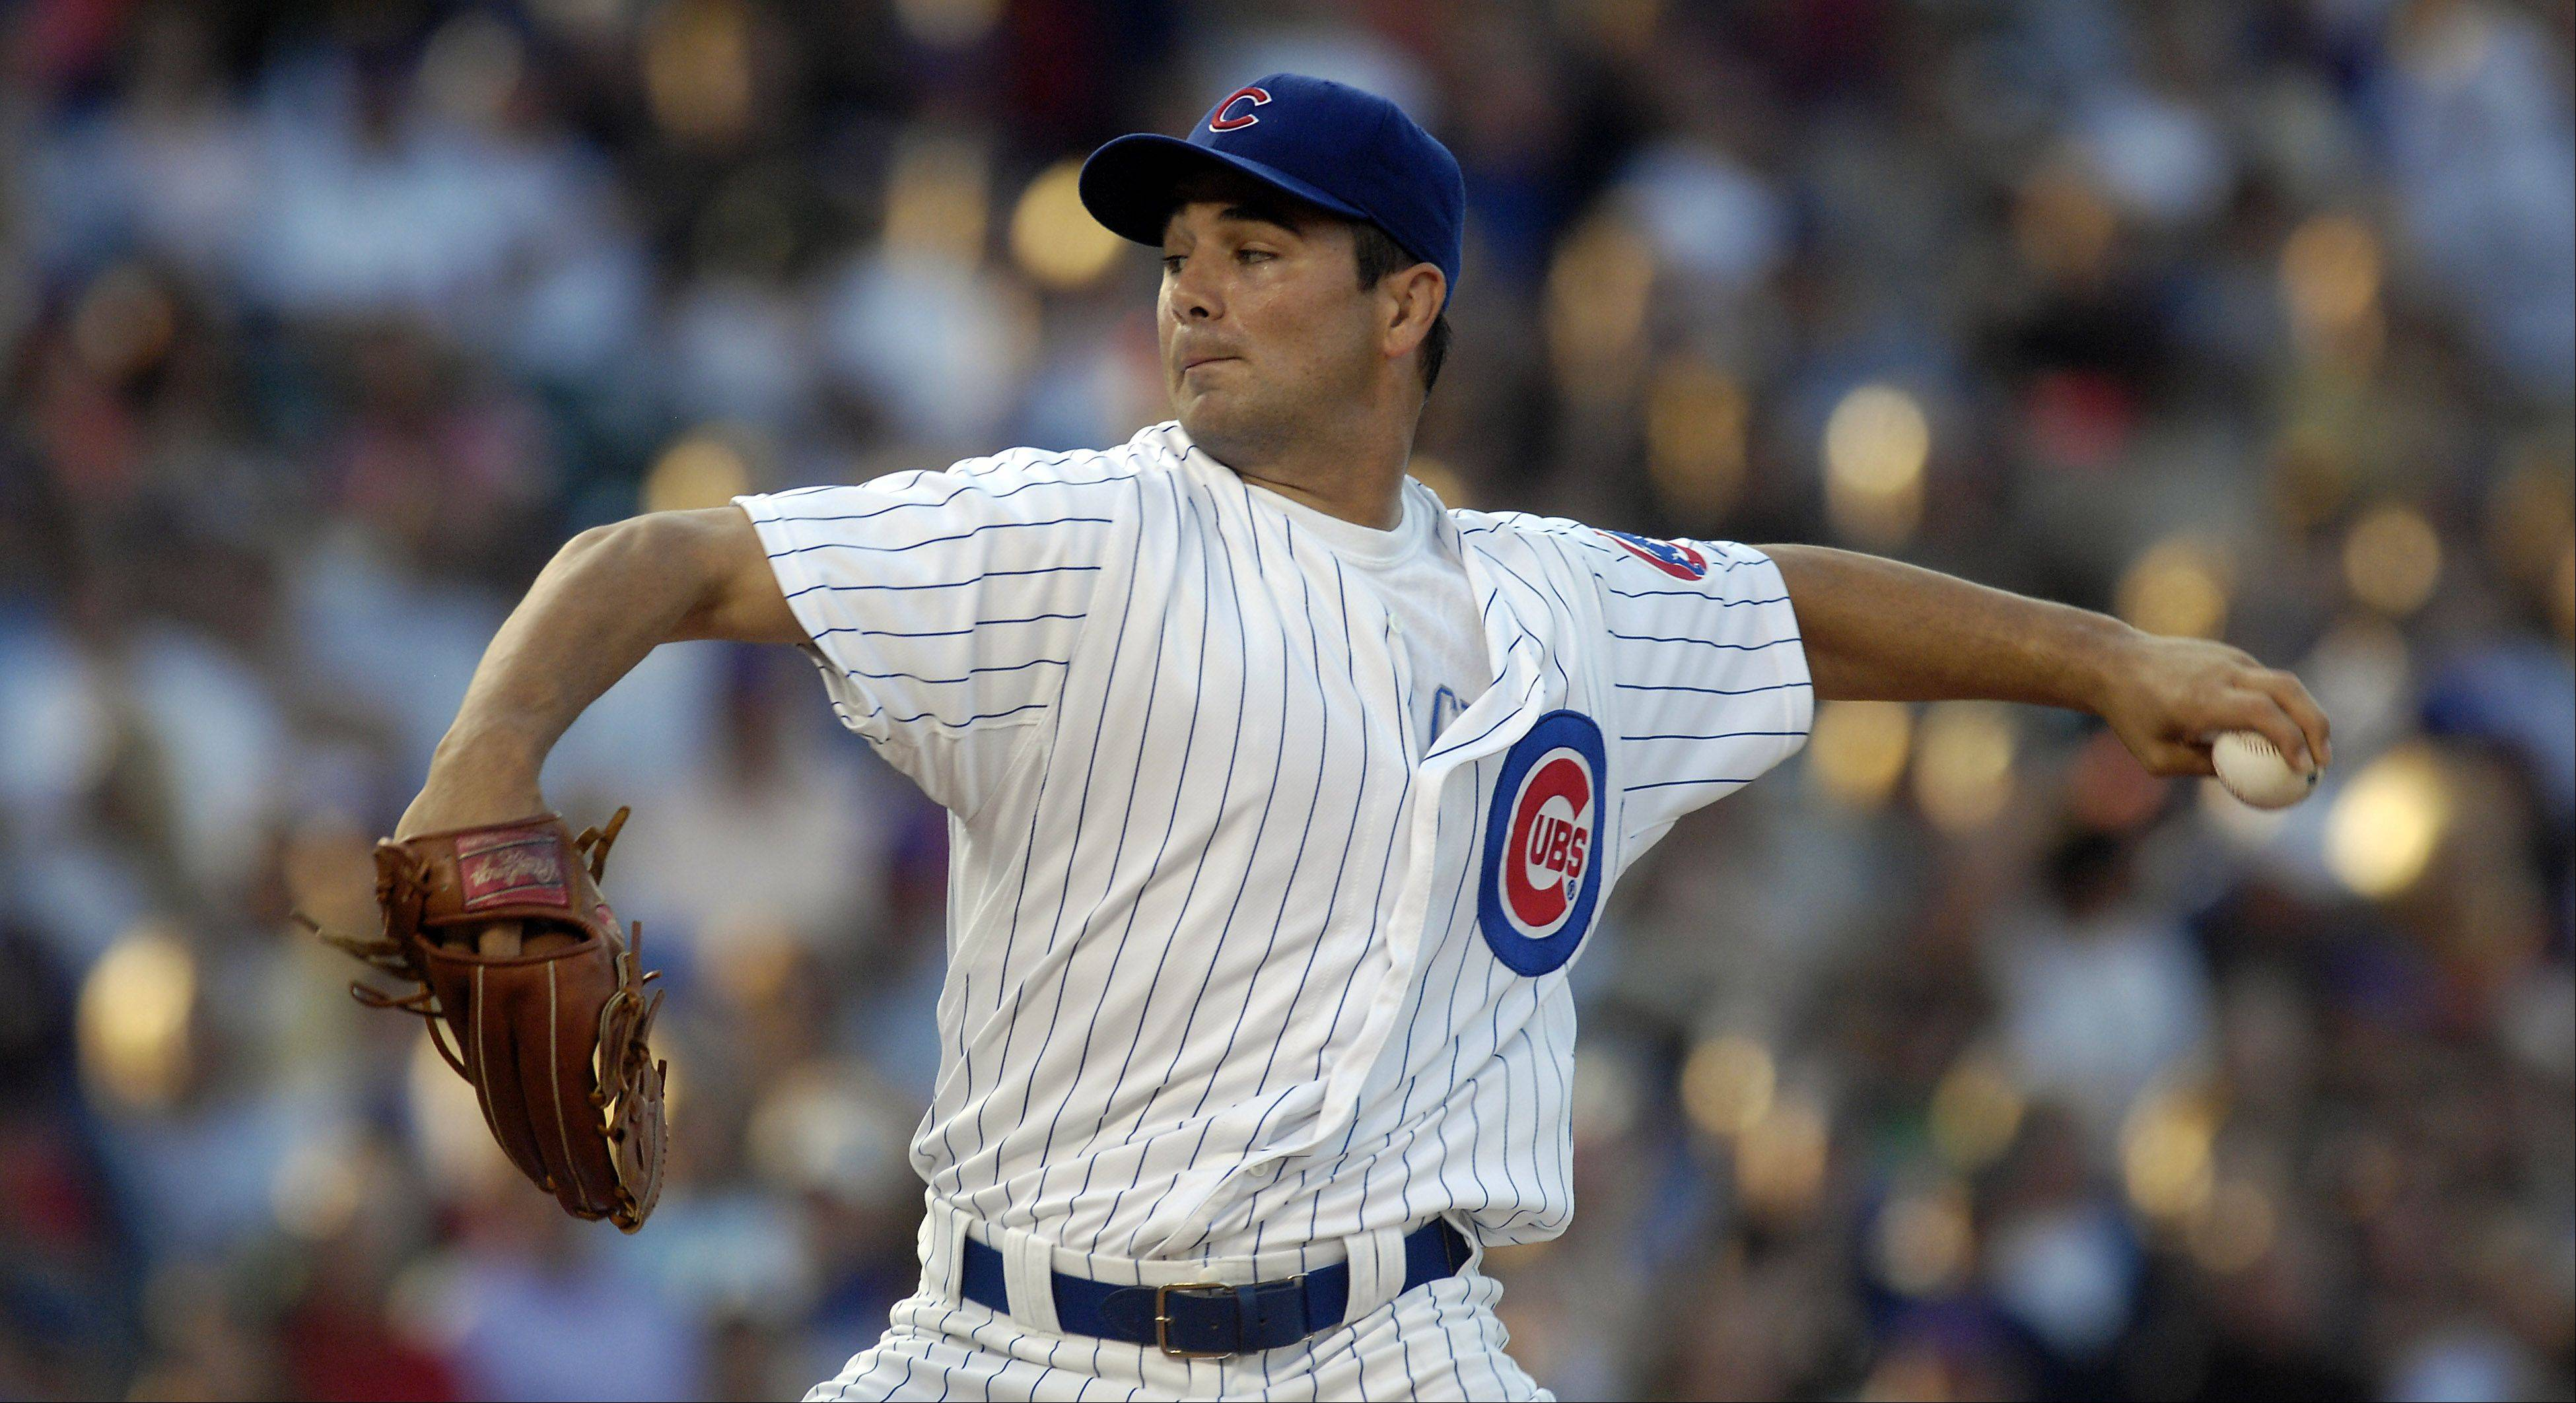 After 15 years in the majors, former Cubs starting pitcher Ted Lilly has decided to retire. He began and ended his career with the Los Angeles Dodgers.